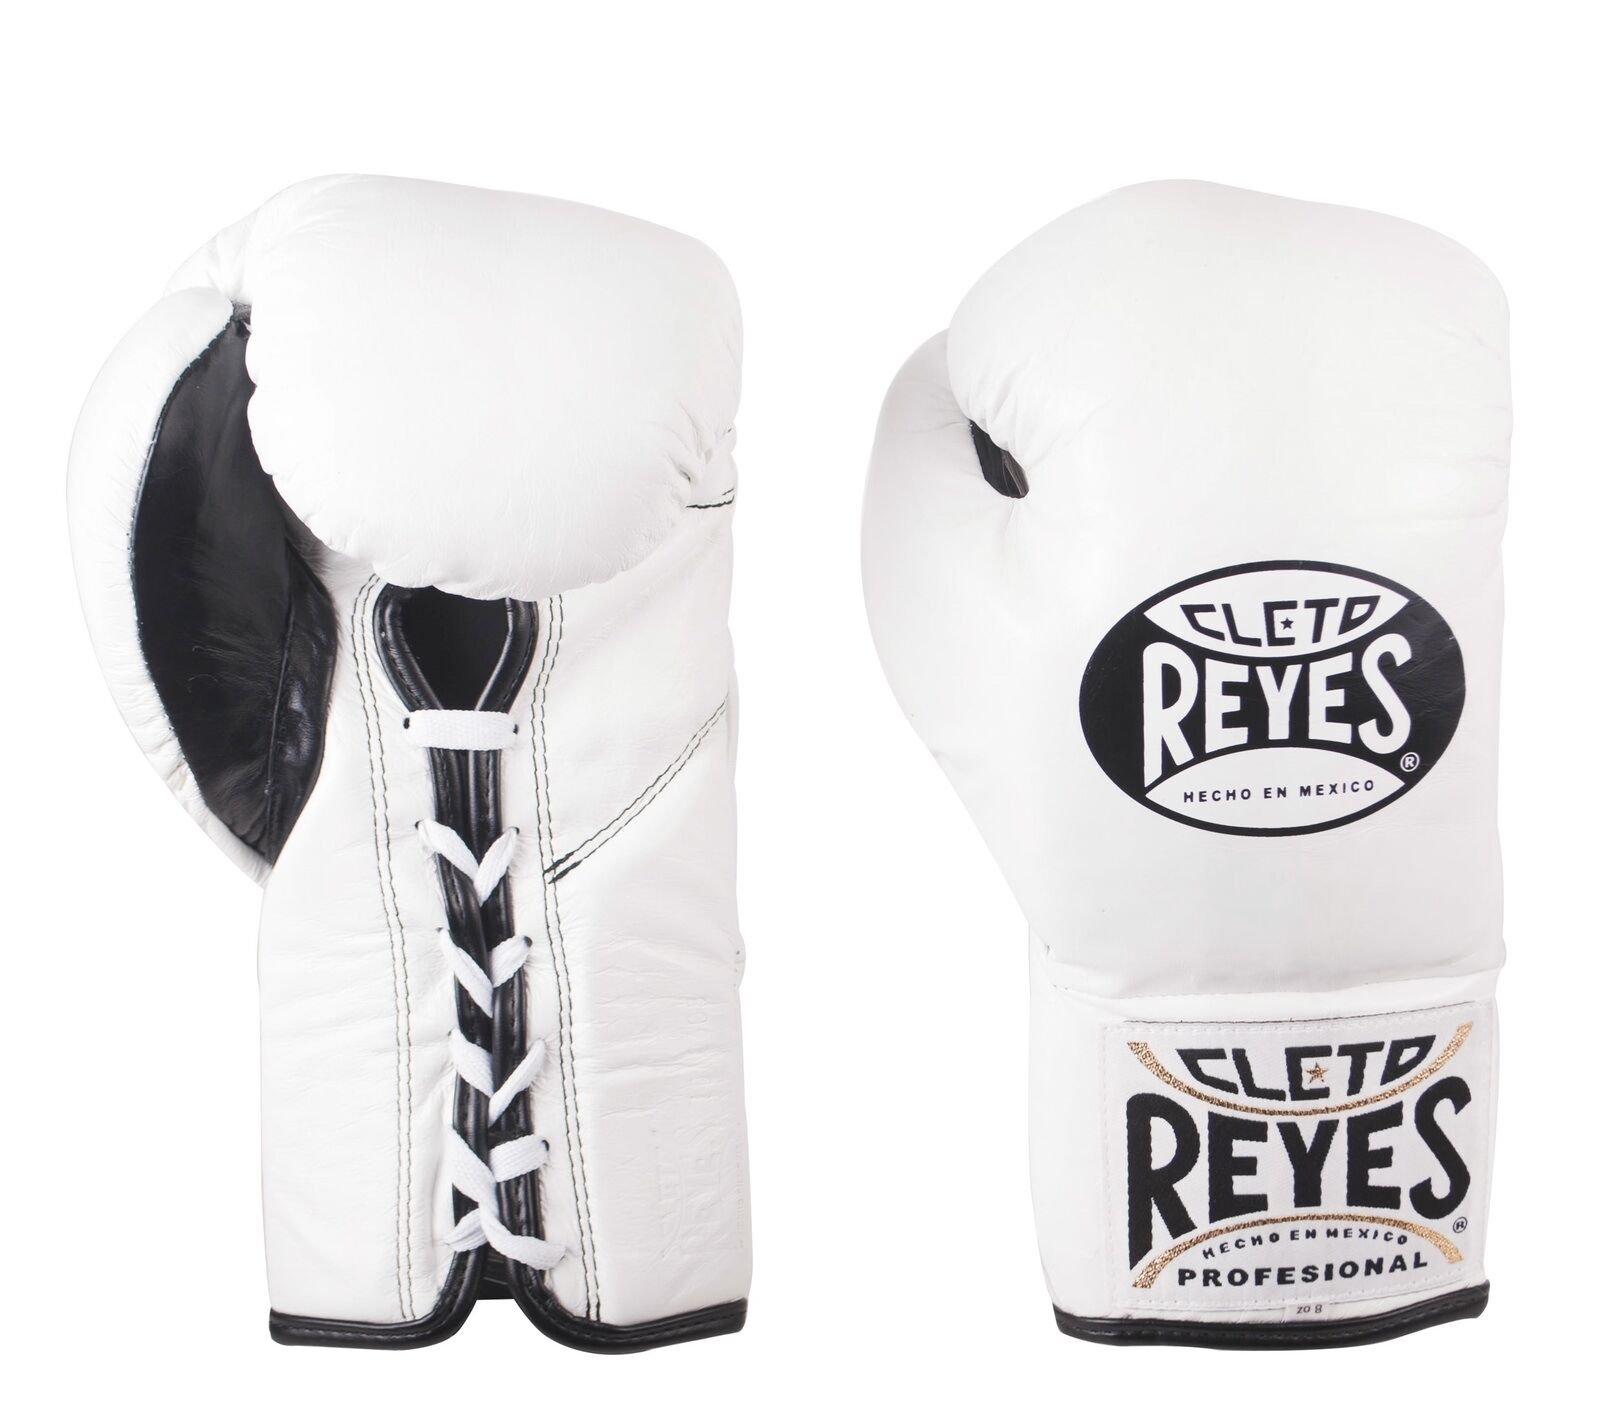 Cleto Reyes Reyes Cleto Offiziell Boxhandschuhe (Weiß) bd300a